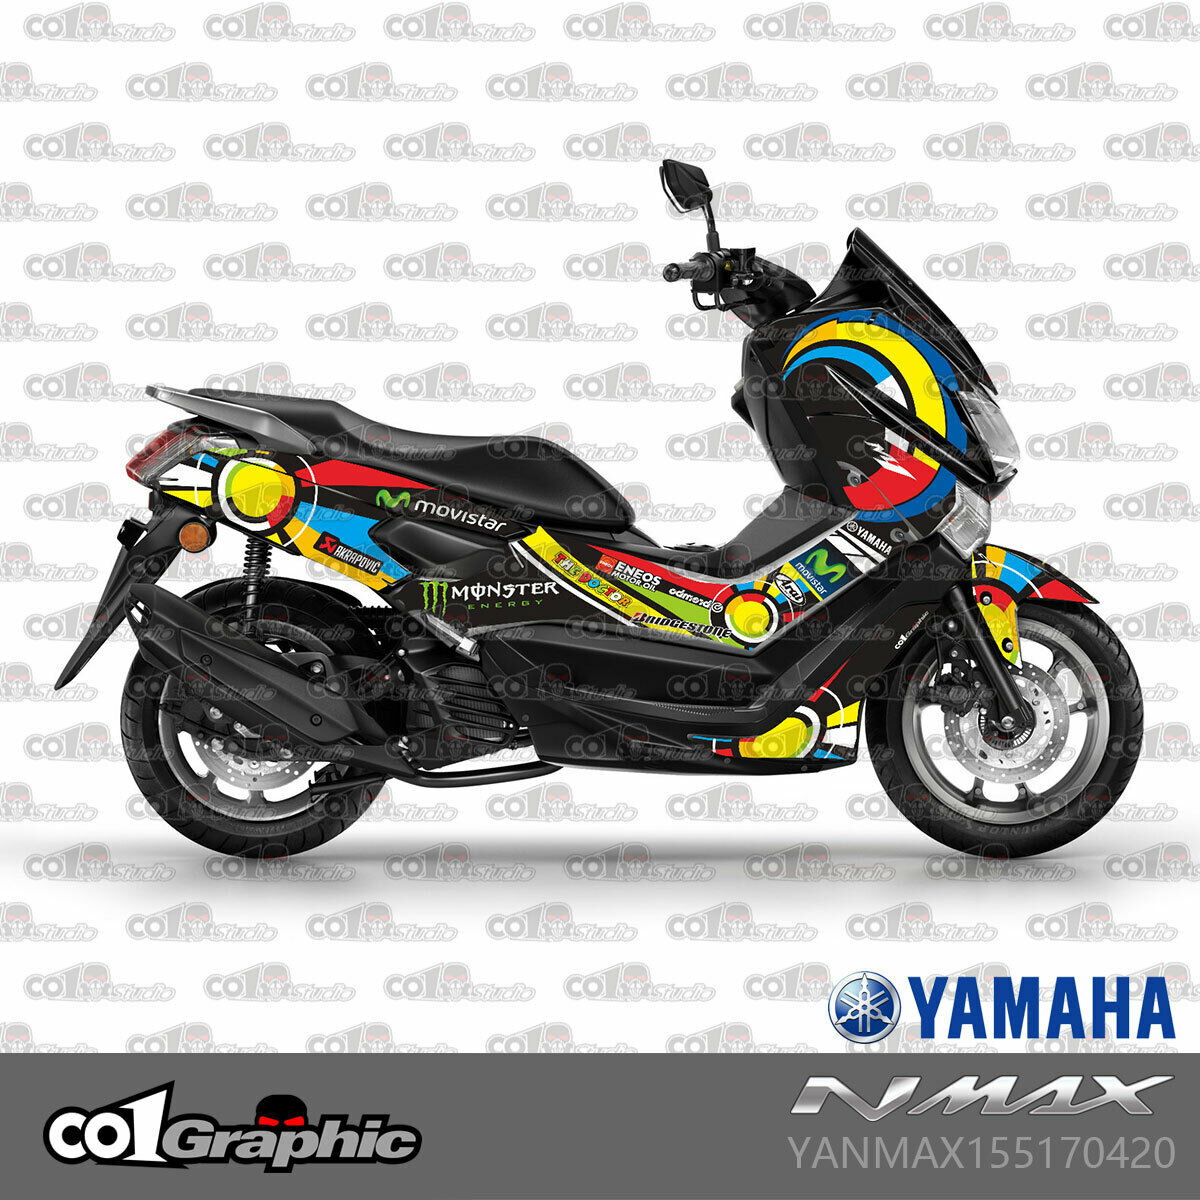 Details About Graphics Decals Stickers Full Kit For Yamaha Nmax 155 2015 2019